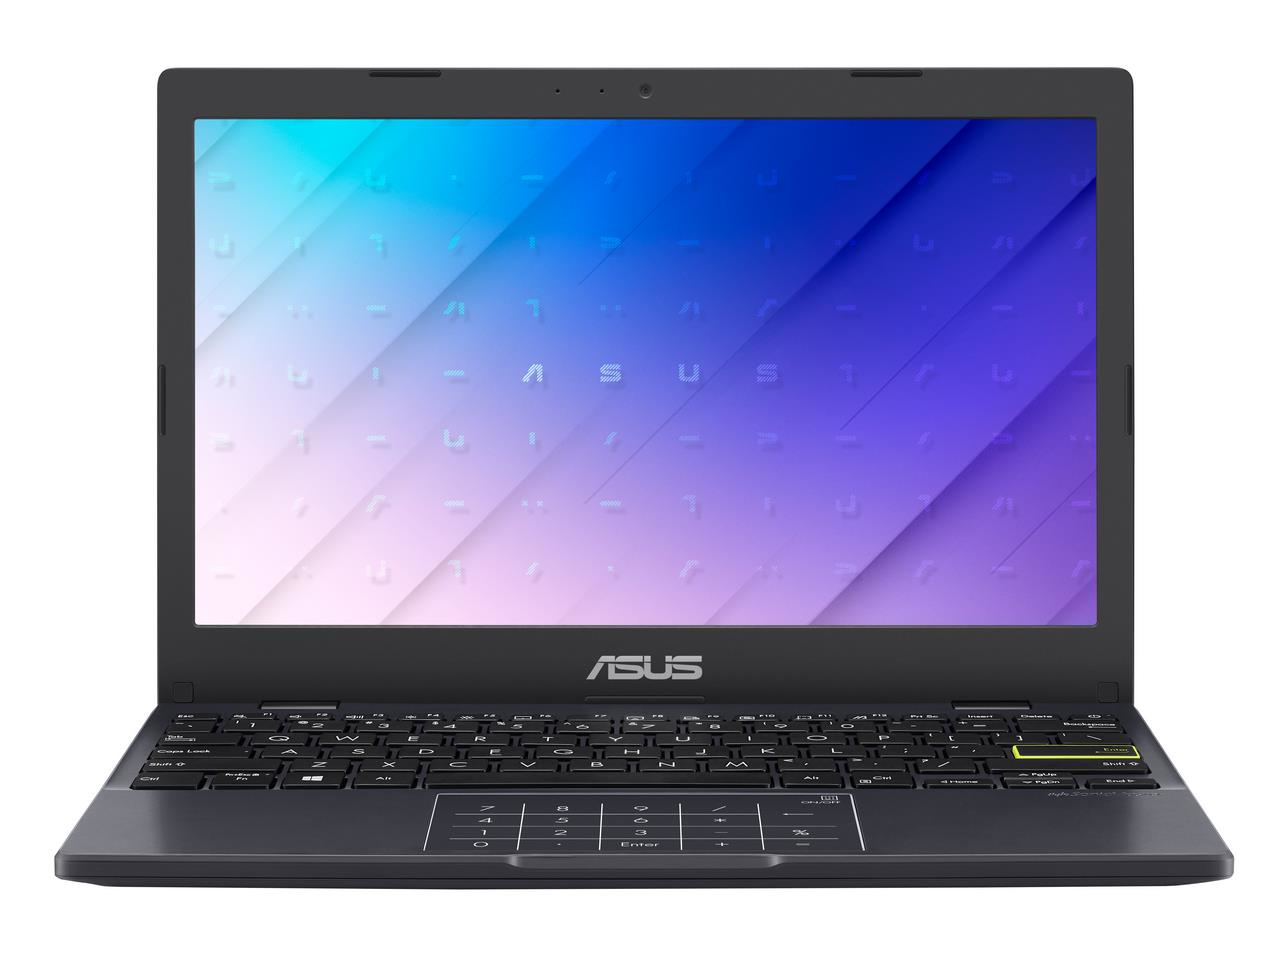 "ASUS E210MA-GJ001TS Notebook Blue 29.5 cm (11.6"""") 1366 x 768 pixels Intel® Celeron® N 4 GB DDR4-SDRAM 64 GB eMMC Wi-Fi 5 (802.11ac) Windows 10 S"